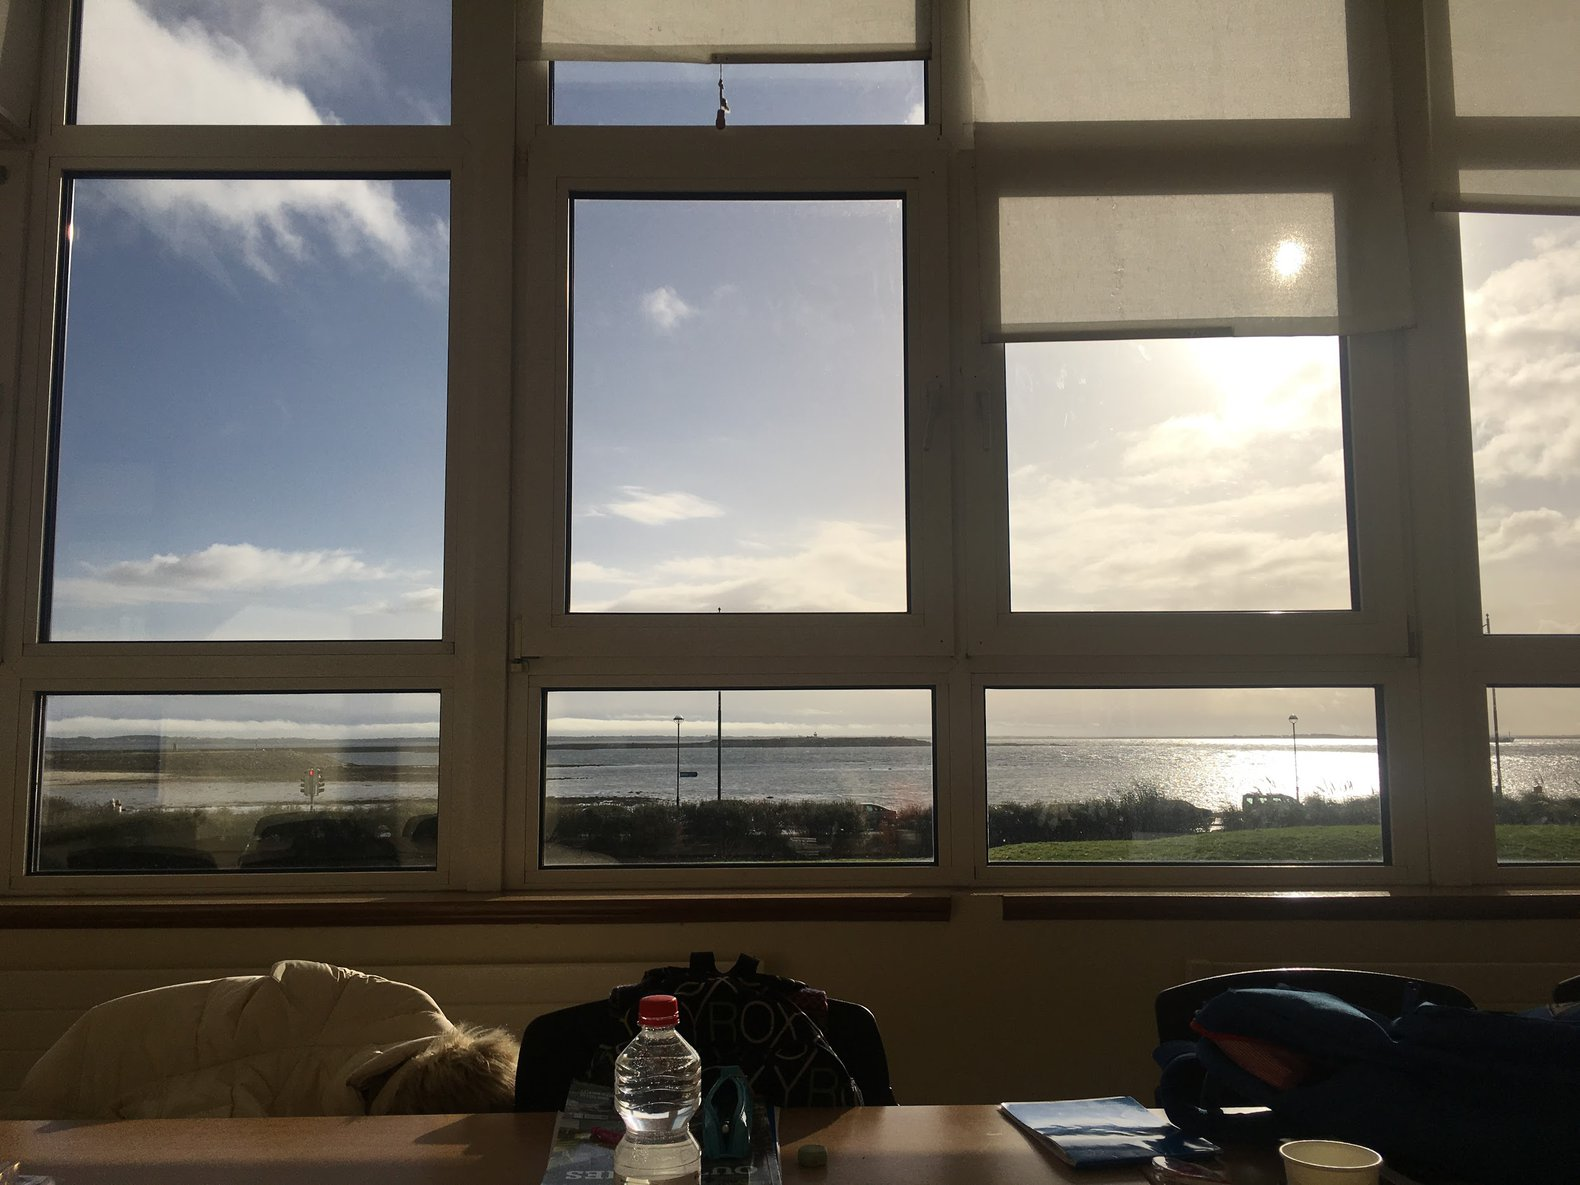 View from the classroom